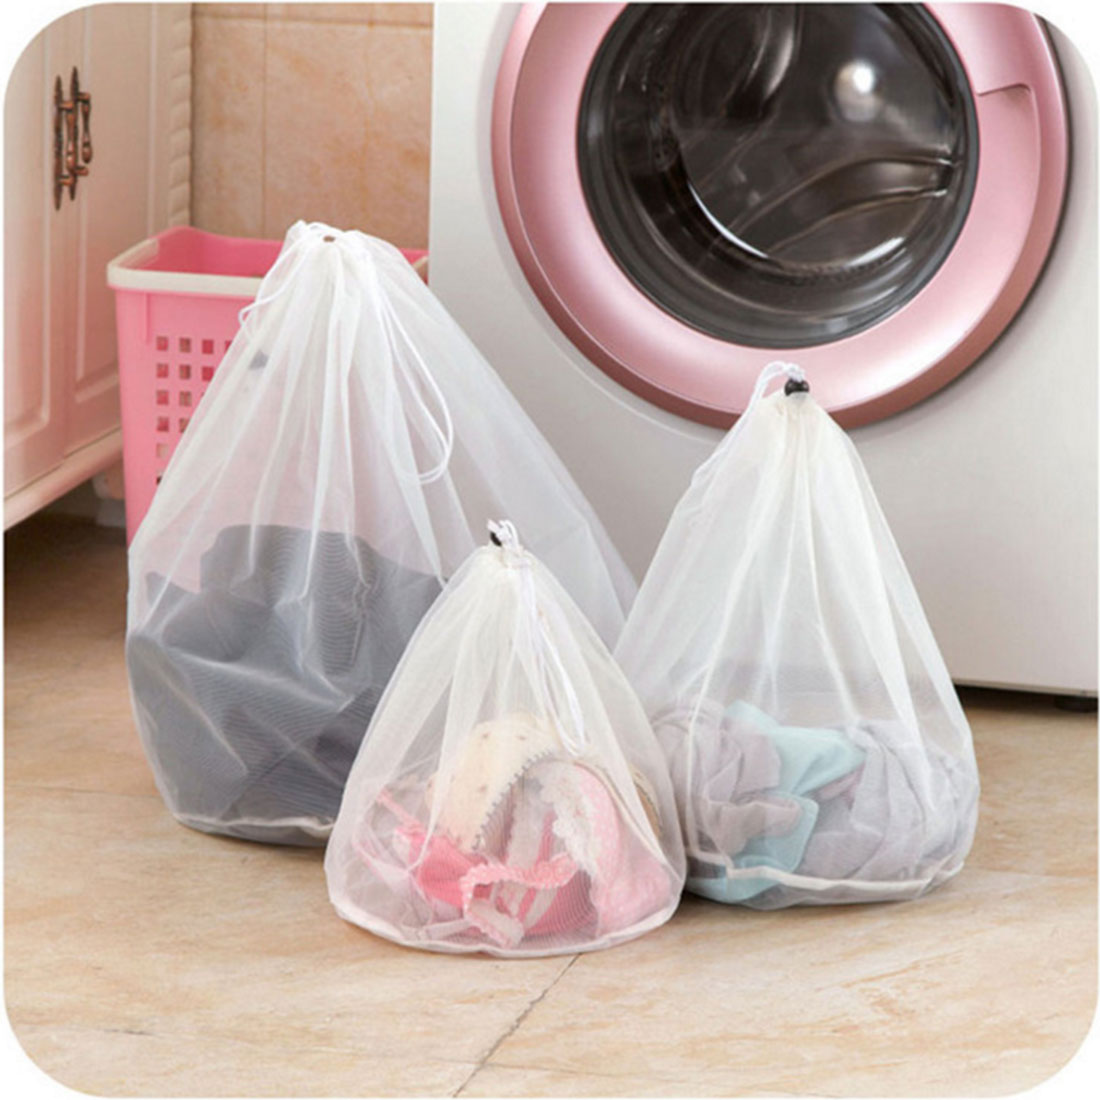 New Household Cleaning Tools Bra Underwear Products Laundry Bags Baskets Mesh Bag Accessories Laundry Wash Care